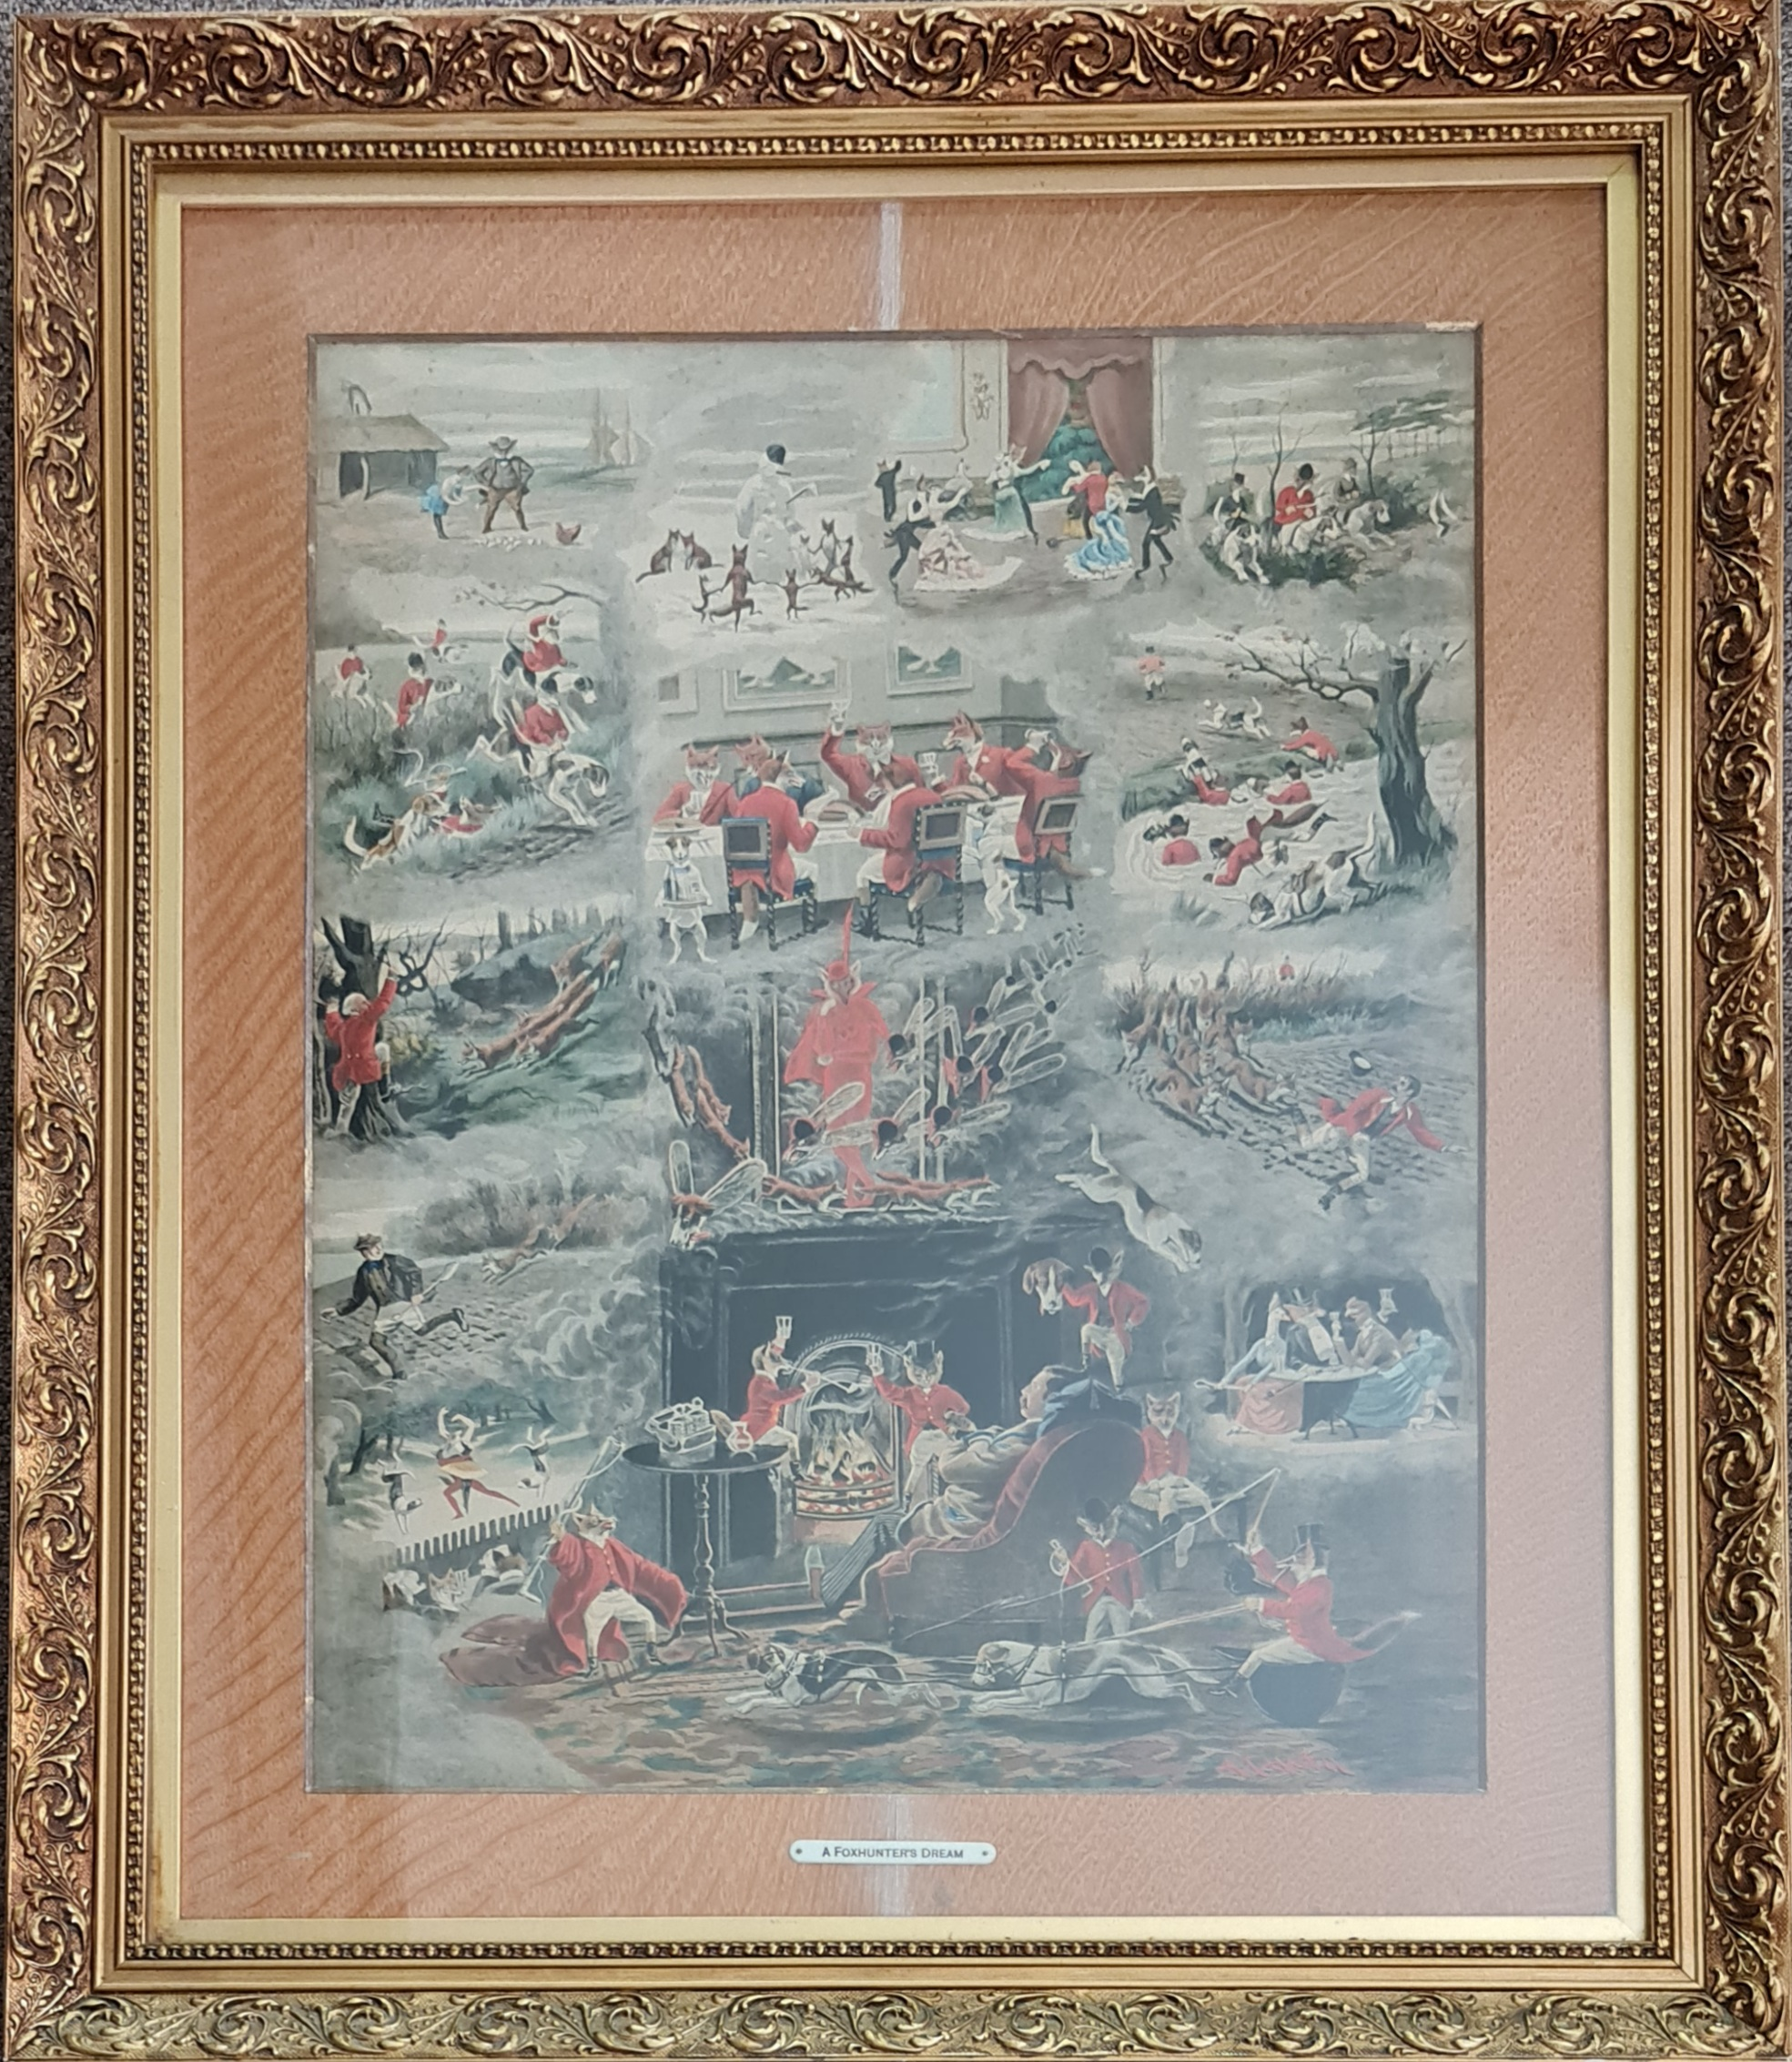 ALFRED CHARLES HAVELL. Framed print, titled 'The Foxhunters Dream', humorous depiction of foxes as